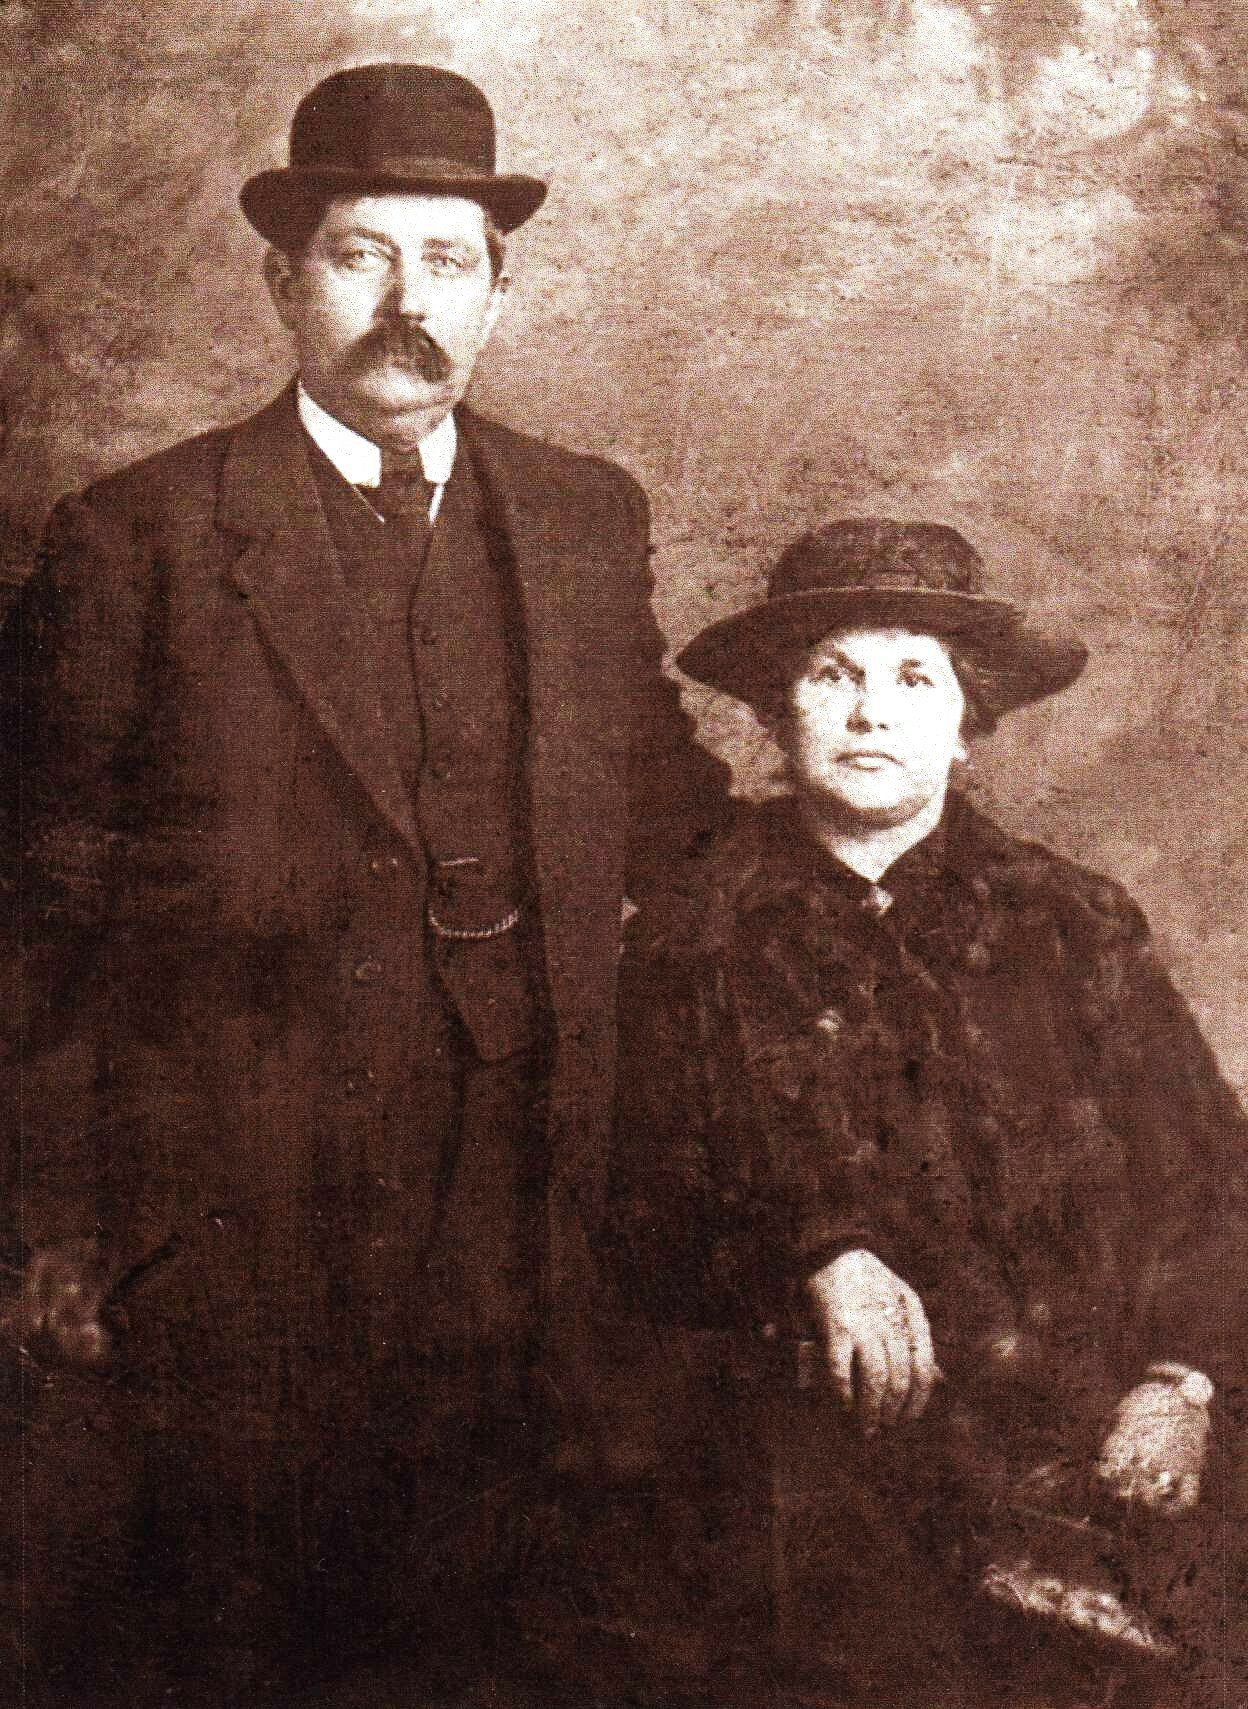 Figure 5. William Martin Devereux and Emma Maria Woodrow Devereux, nee Pengelly, my maternal grandparents. c. 1910.